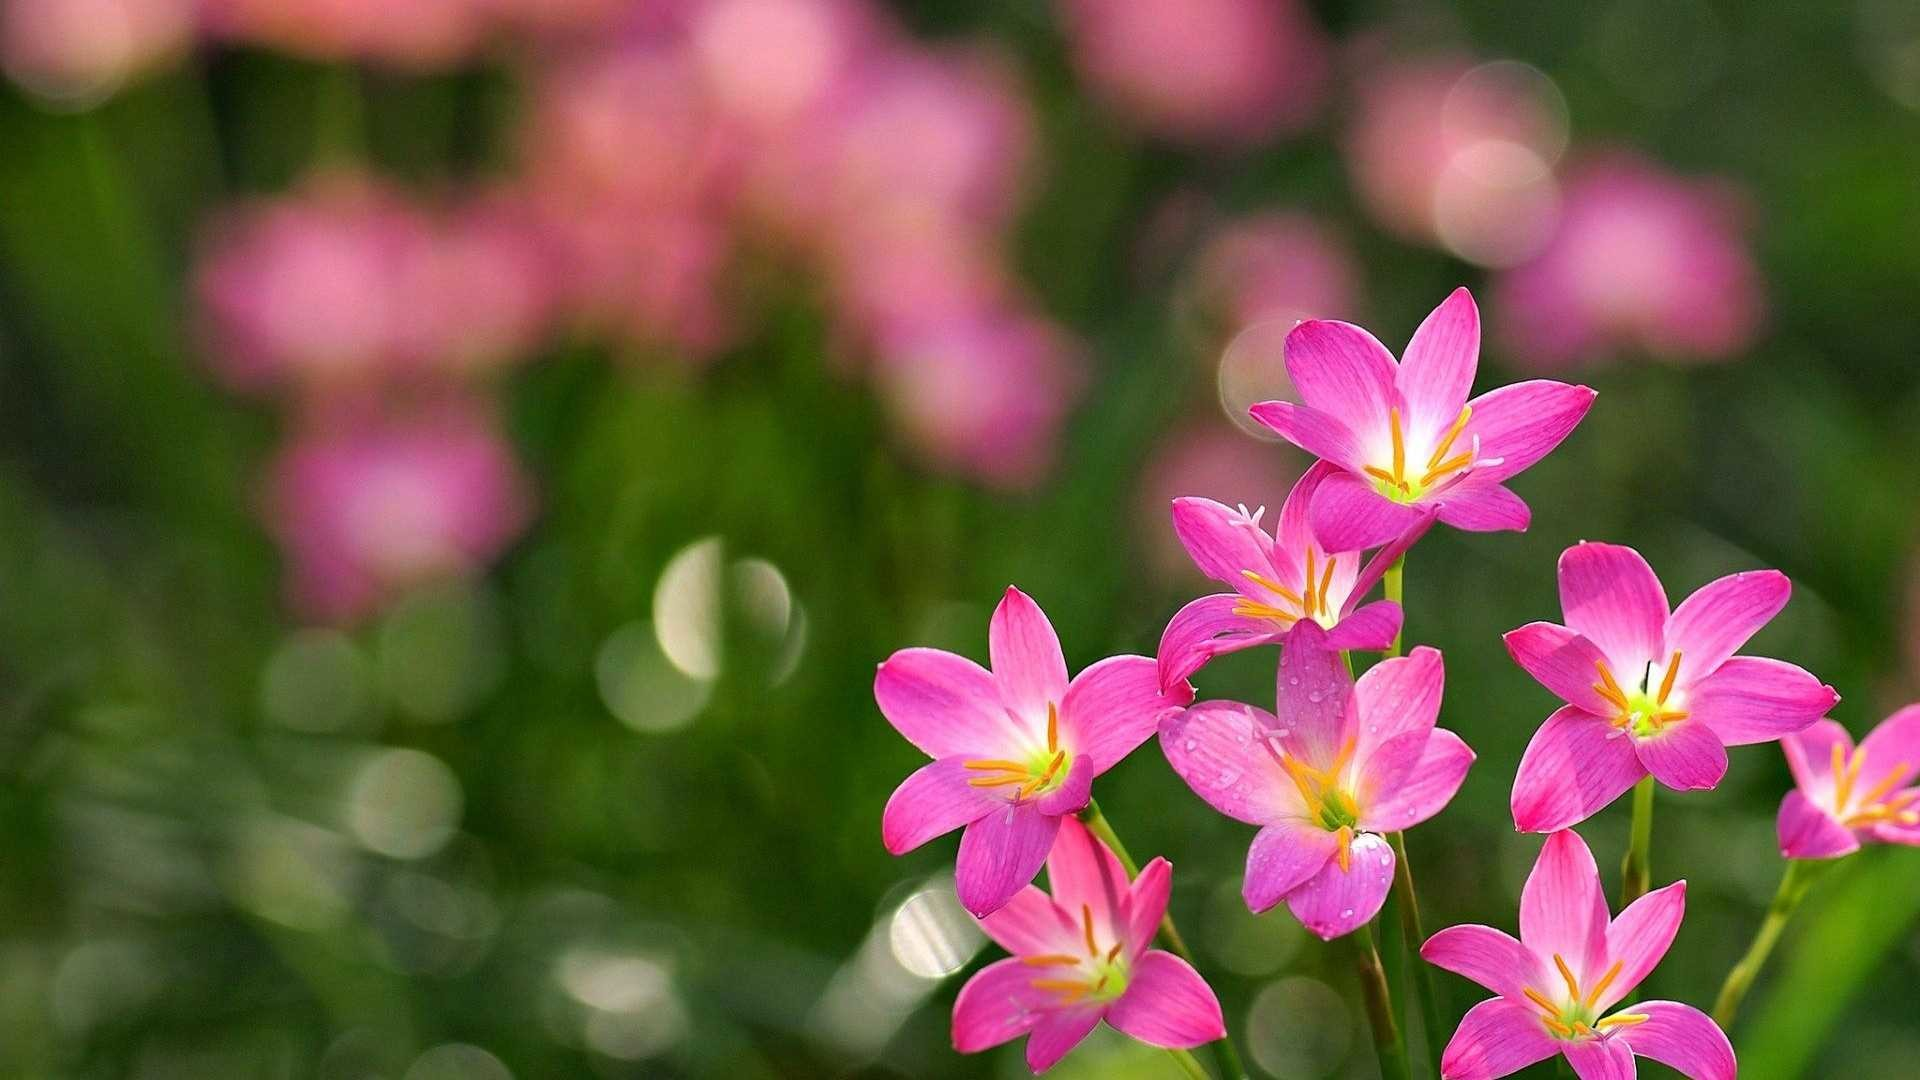 Beautiful floral backgrounds 44 images 1920x1200 flower wallpaper 1 flower wallpaper 2 flower wallpaper 3 izmirmasajfo